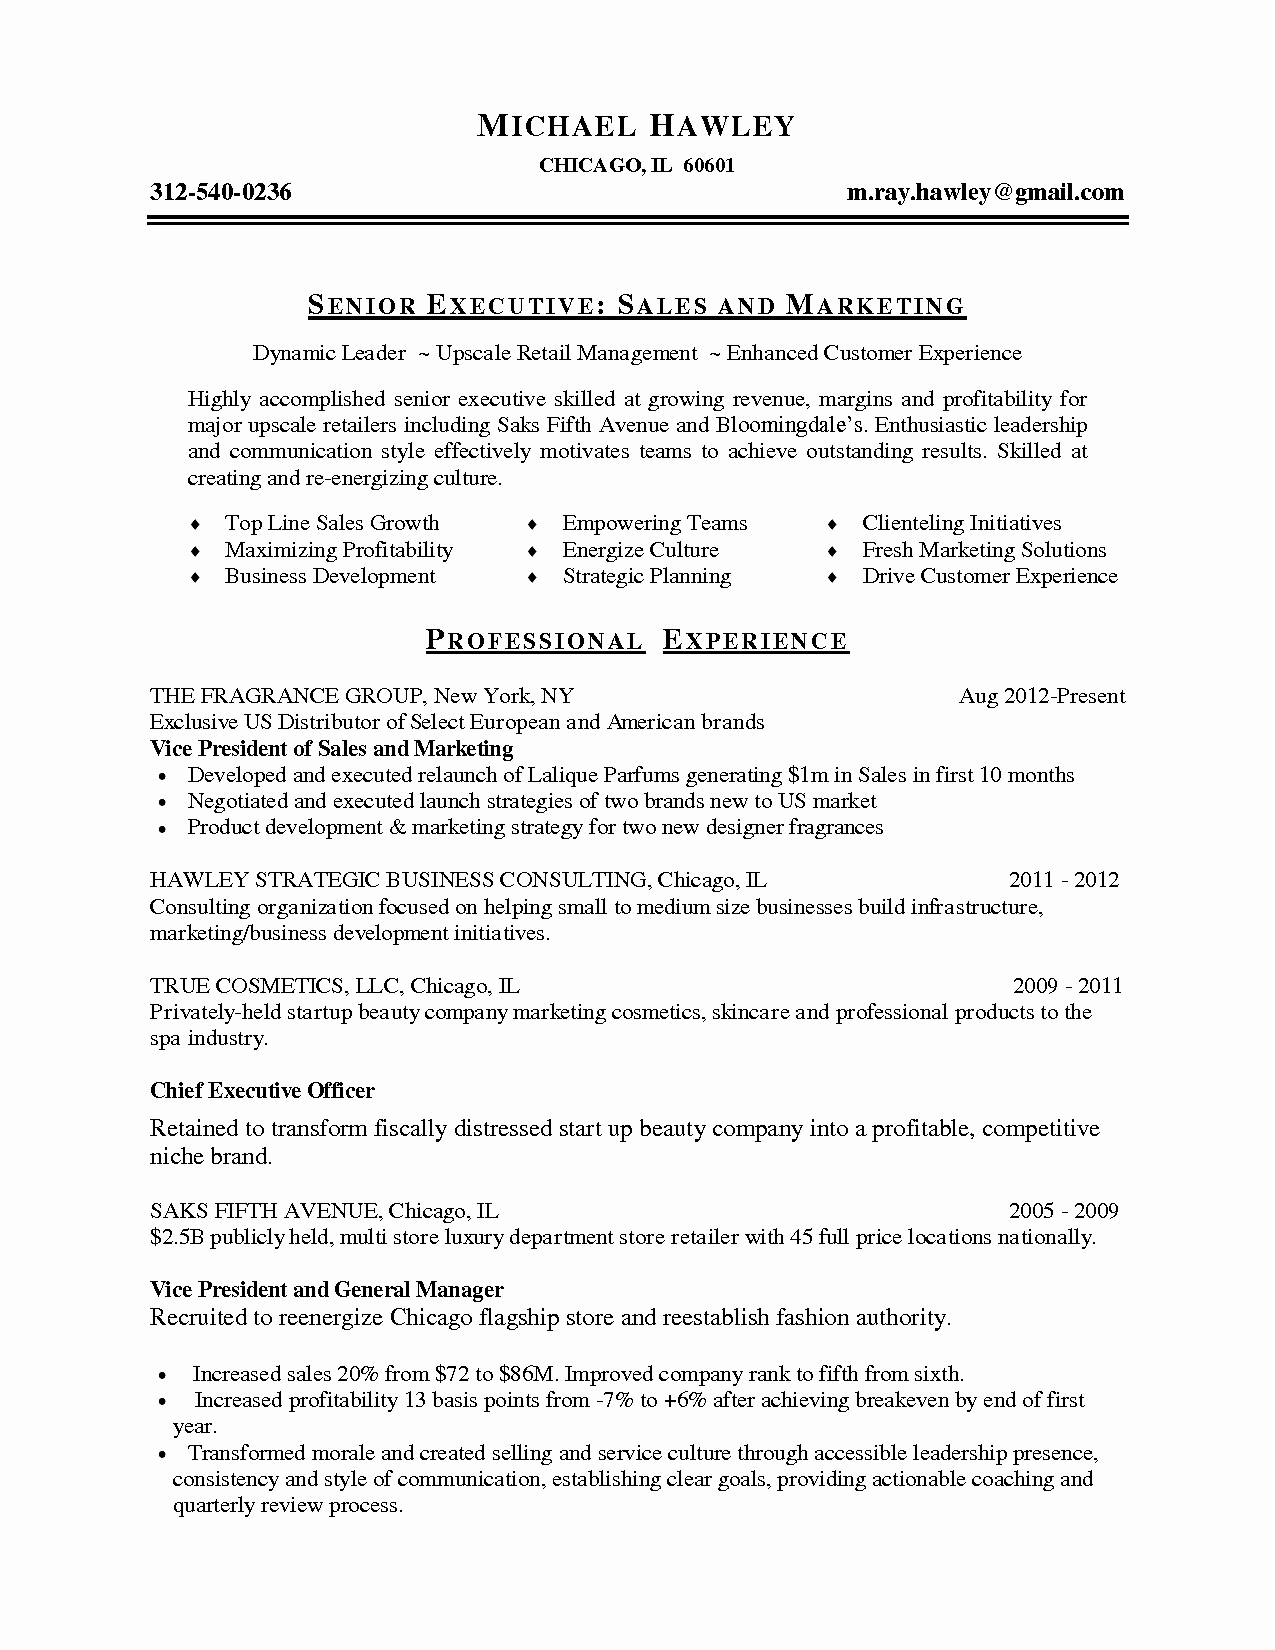 Bath and Body Works Sales associate Resume Resume Ideas